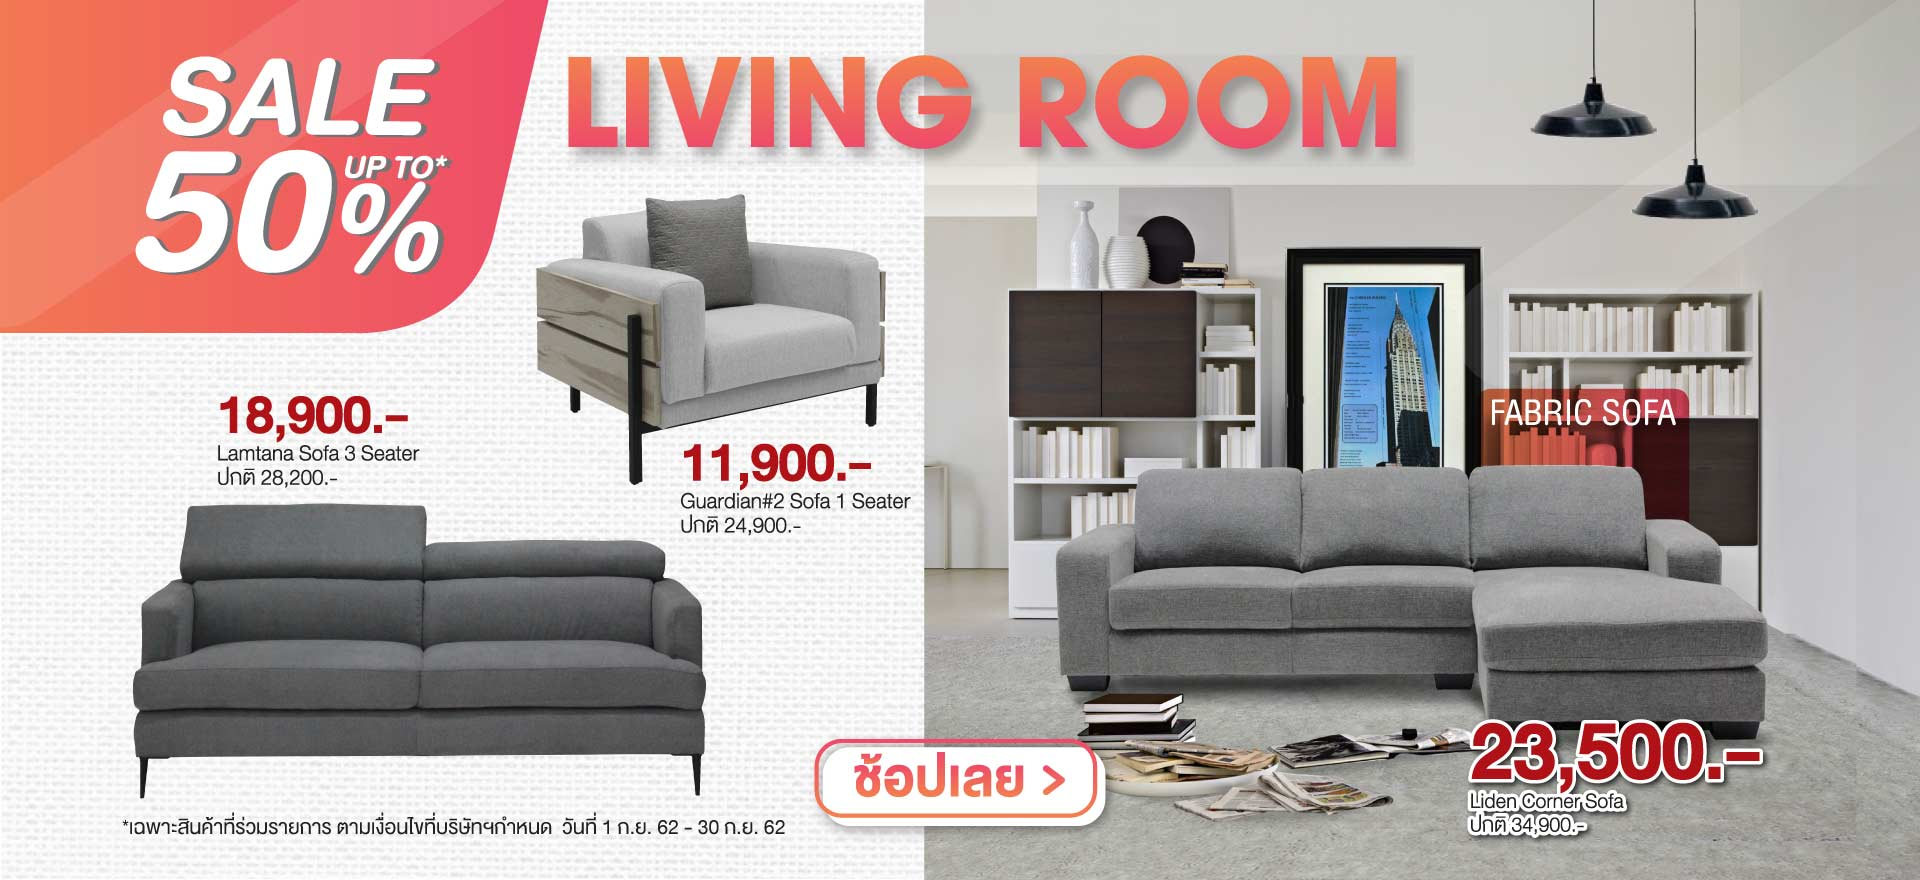 LIVING ROOM SALE UP TO 50%